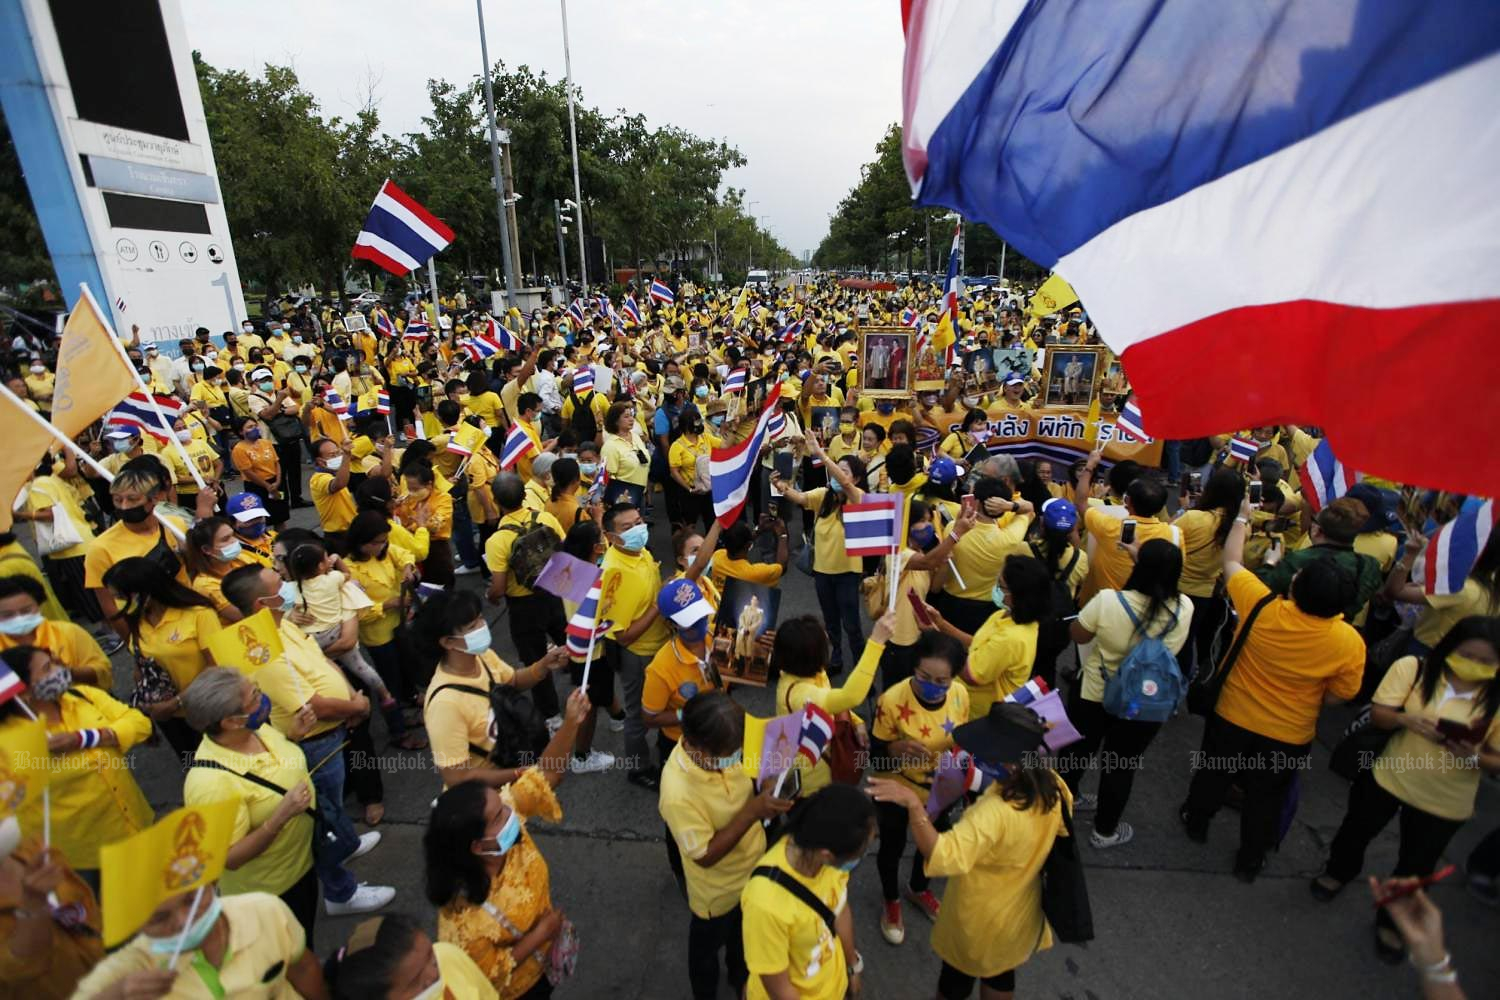 Yellow-clad people join a gathering outside the government complex on Chaeng Watthana Road yesterday. They dispersed after singing the national anthem and chanting 'Long Live the King'. (Photo by Pattarapong Chatpattarasil)